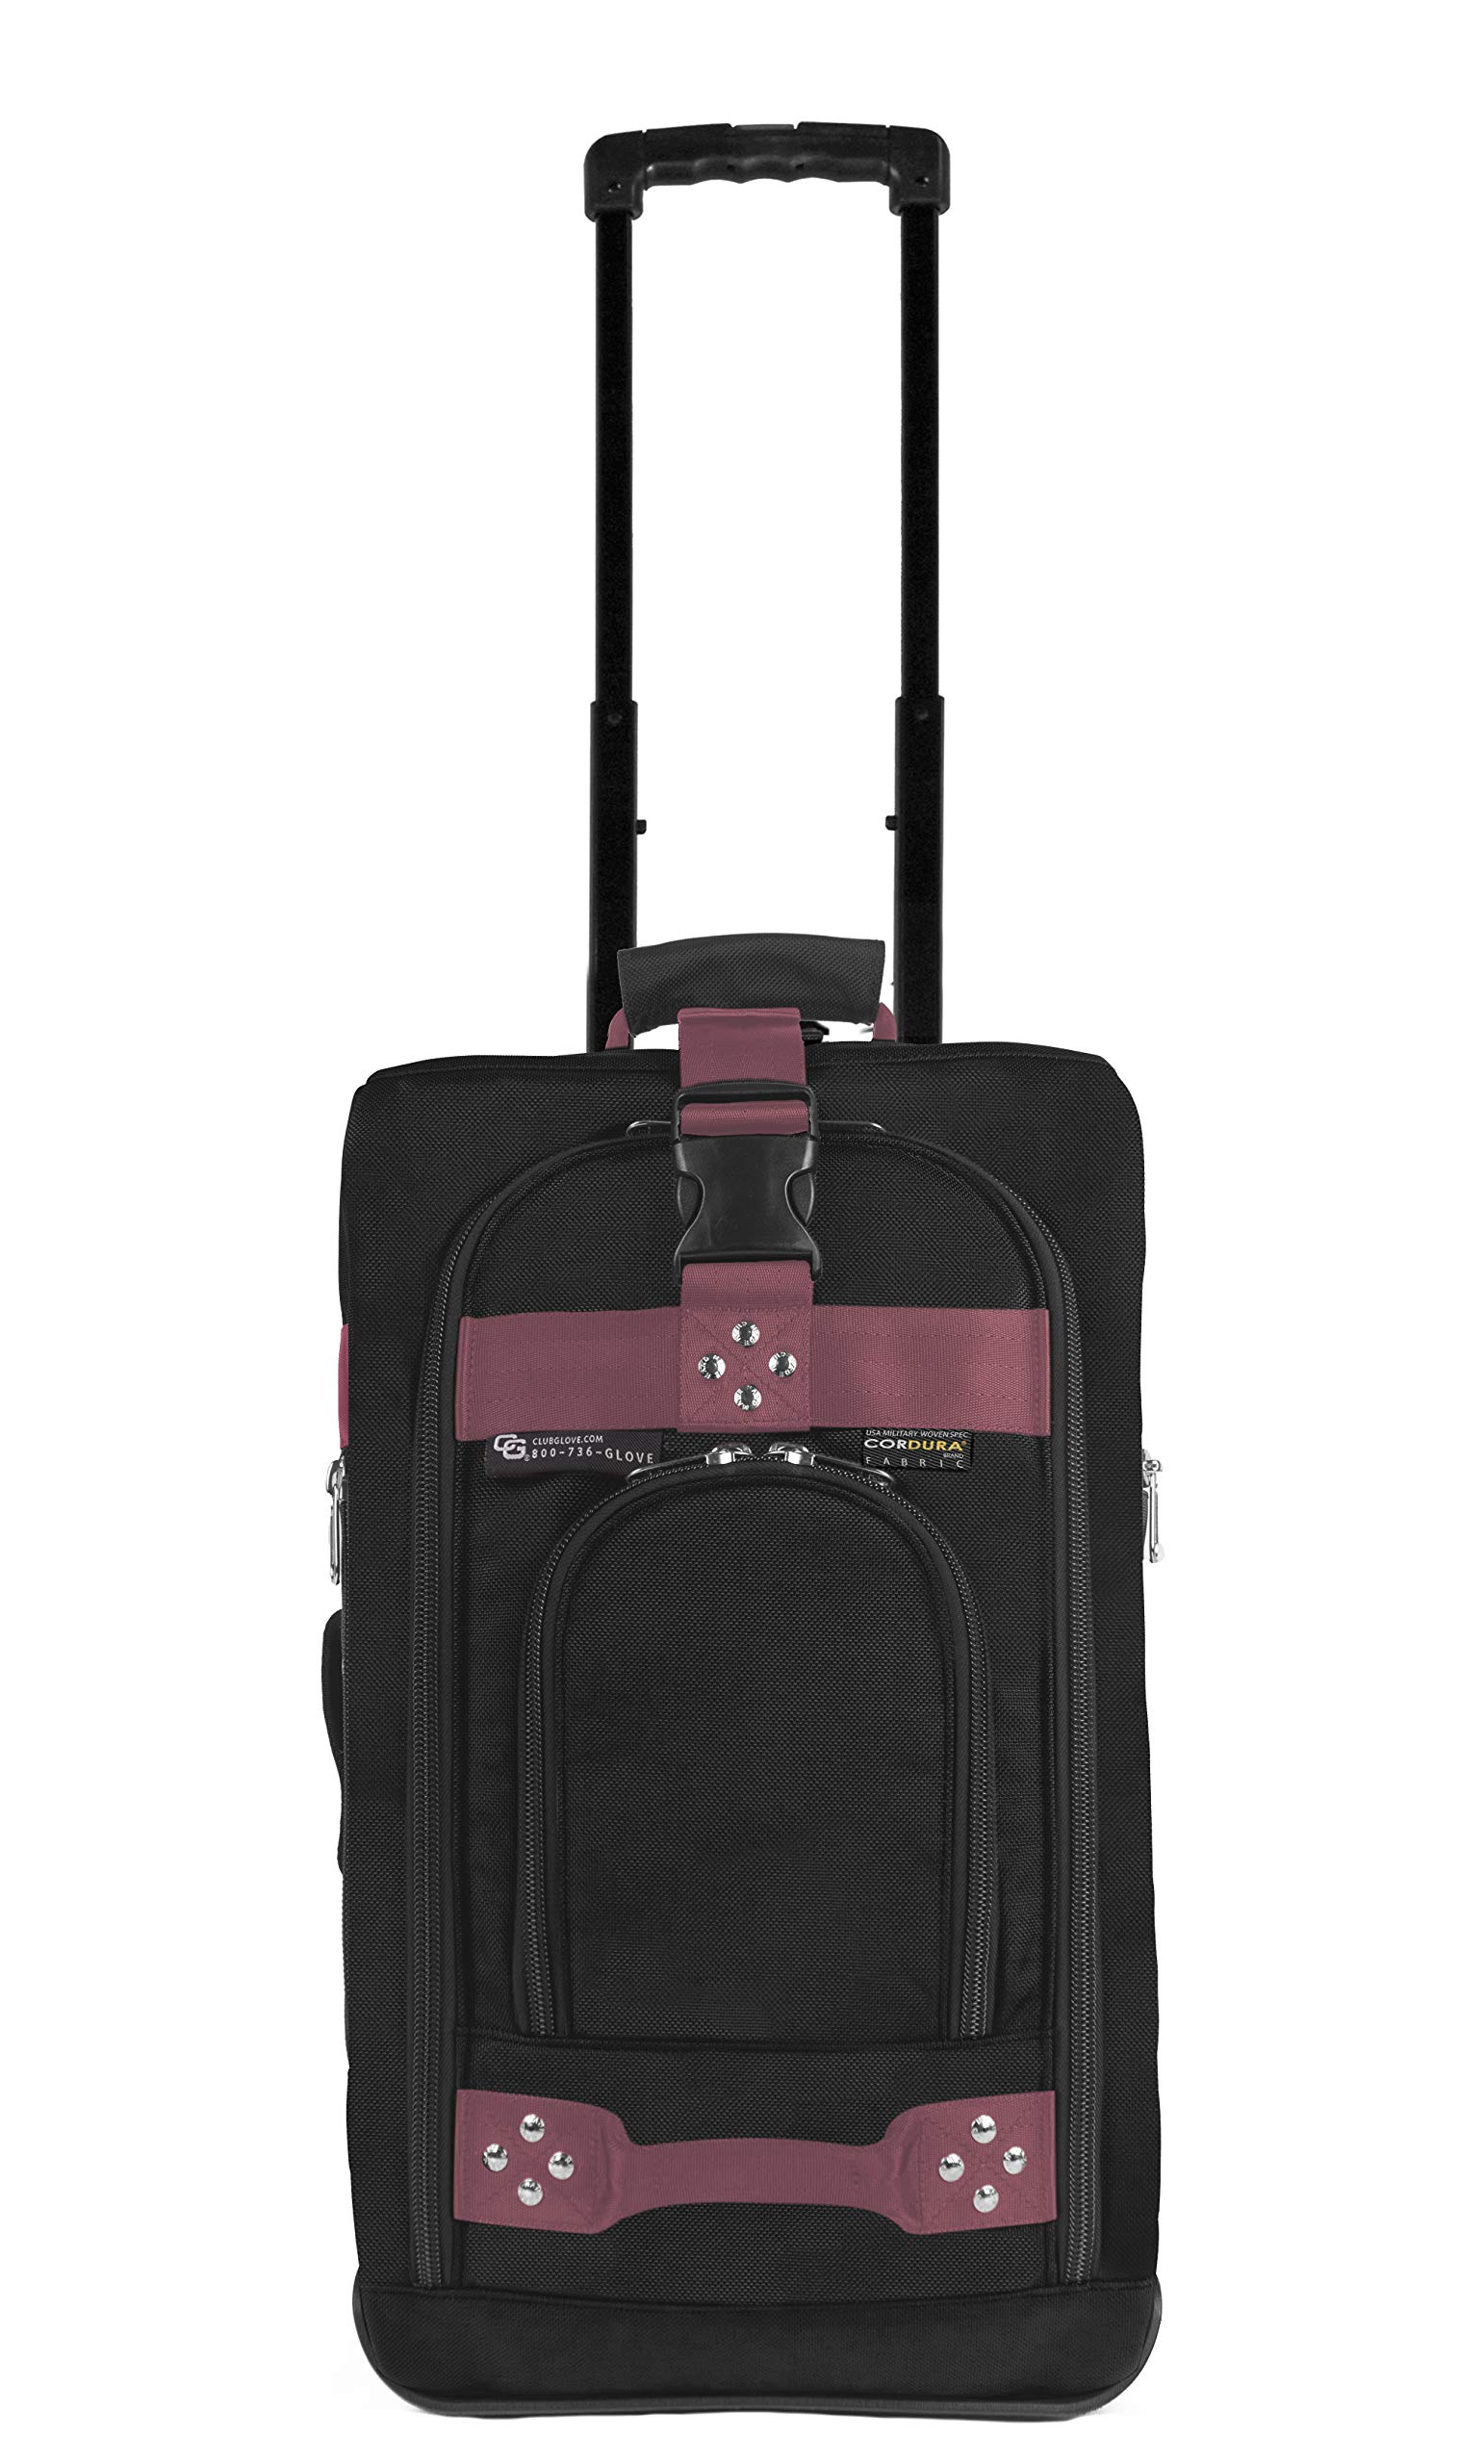 Club Glove Carry On Bag III Travel Luggage (Black/Pink)